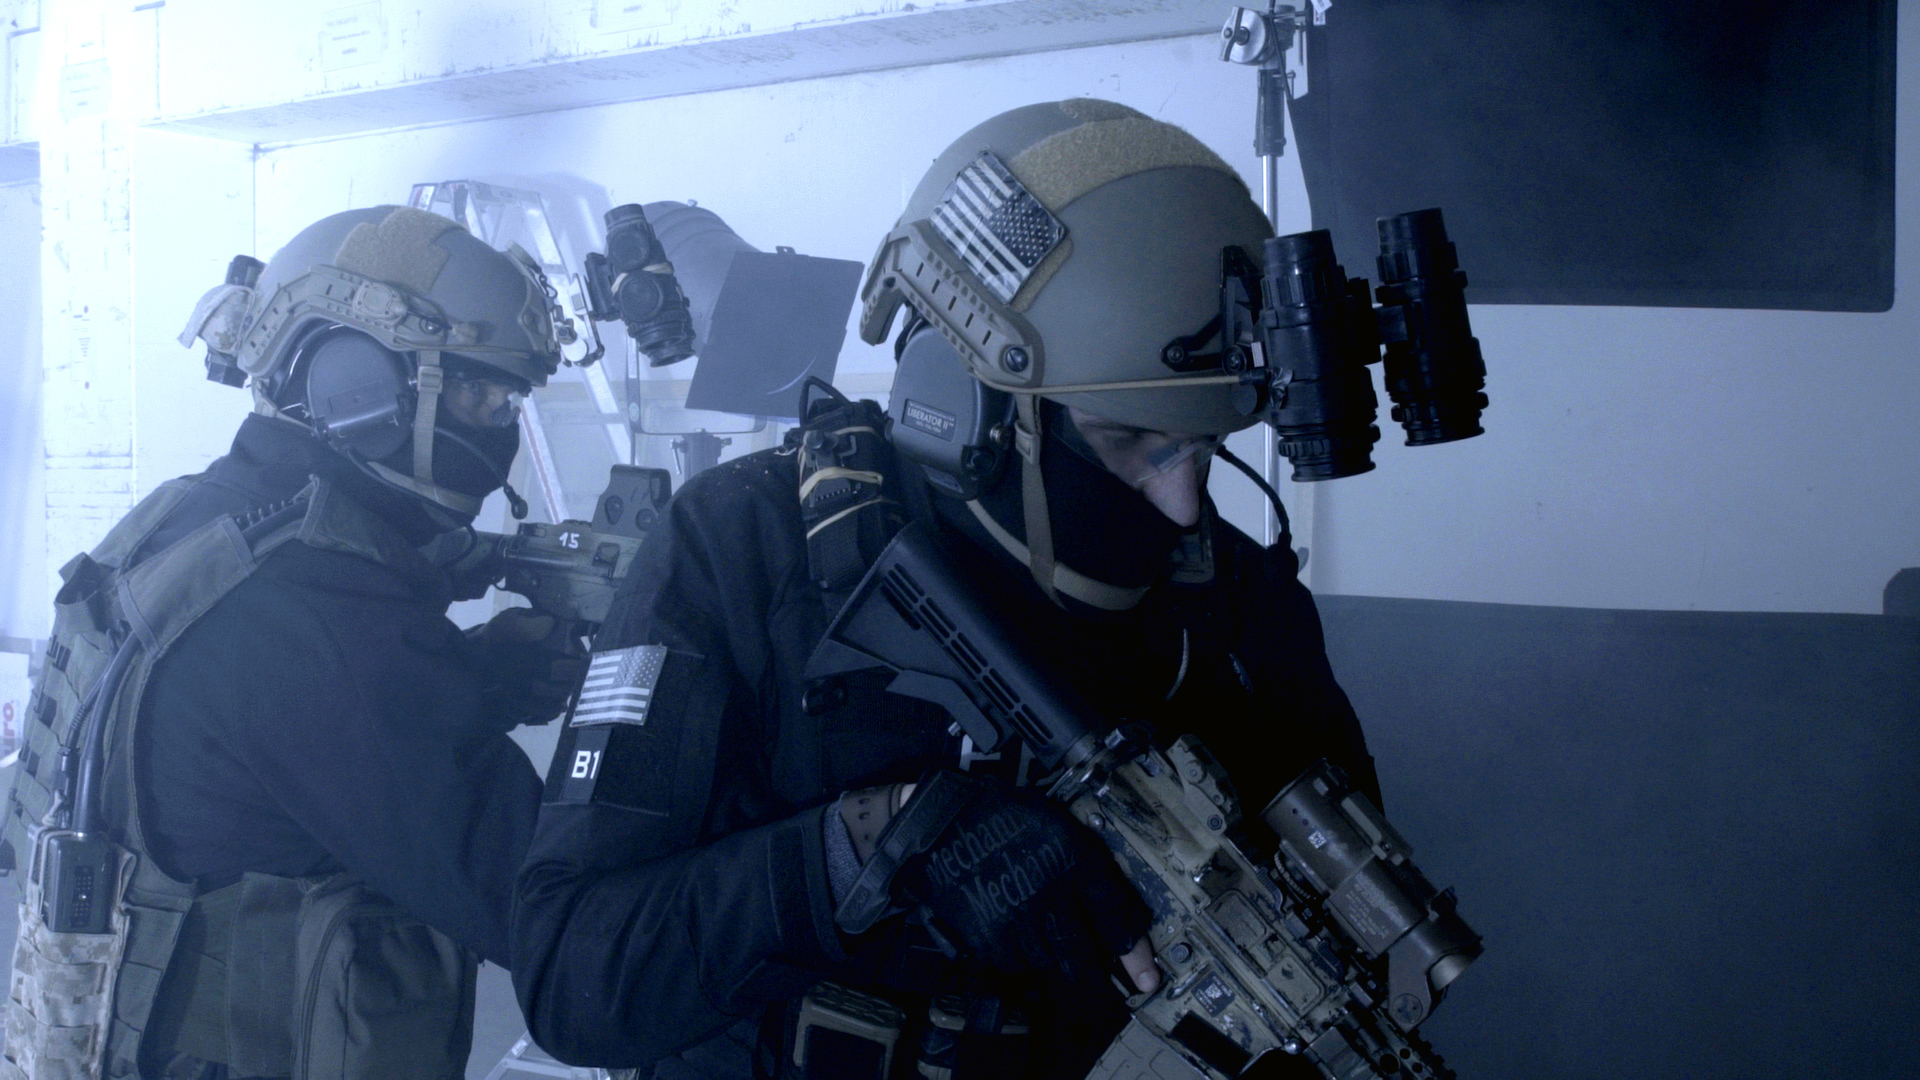 Martin Goeres, MG-Action, Special Forces, FBI HRT, Room Clearing, Movie, Stunt, Action